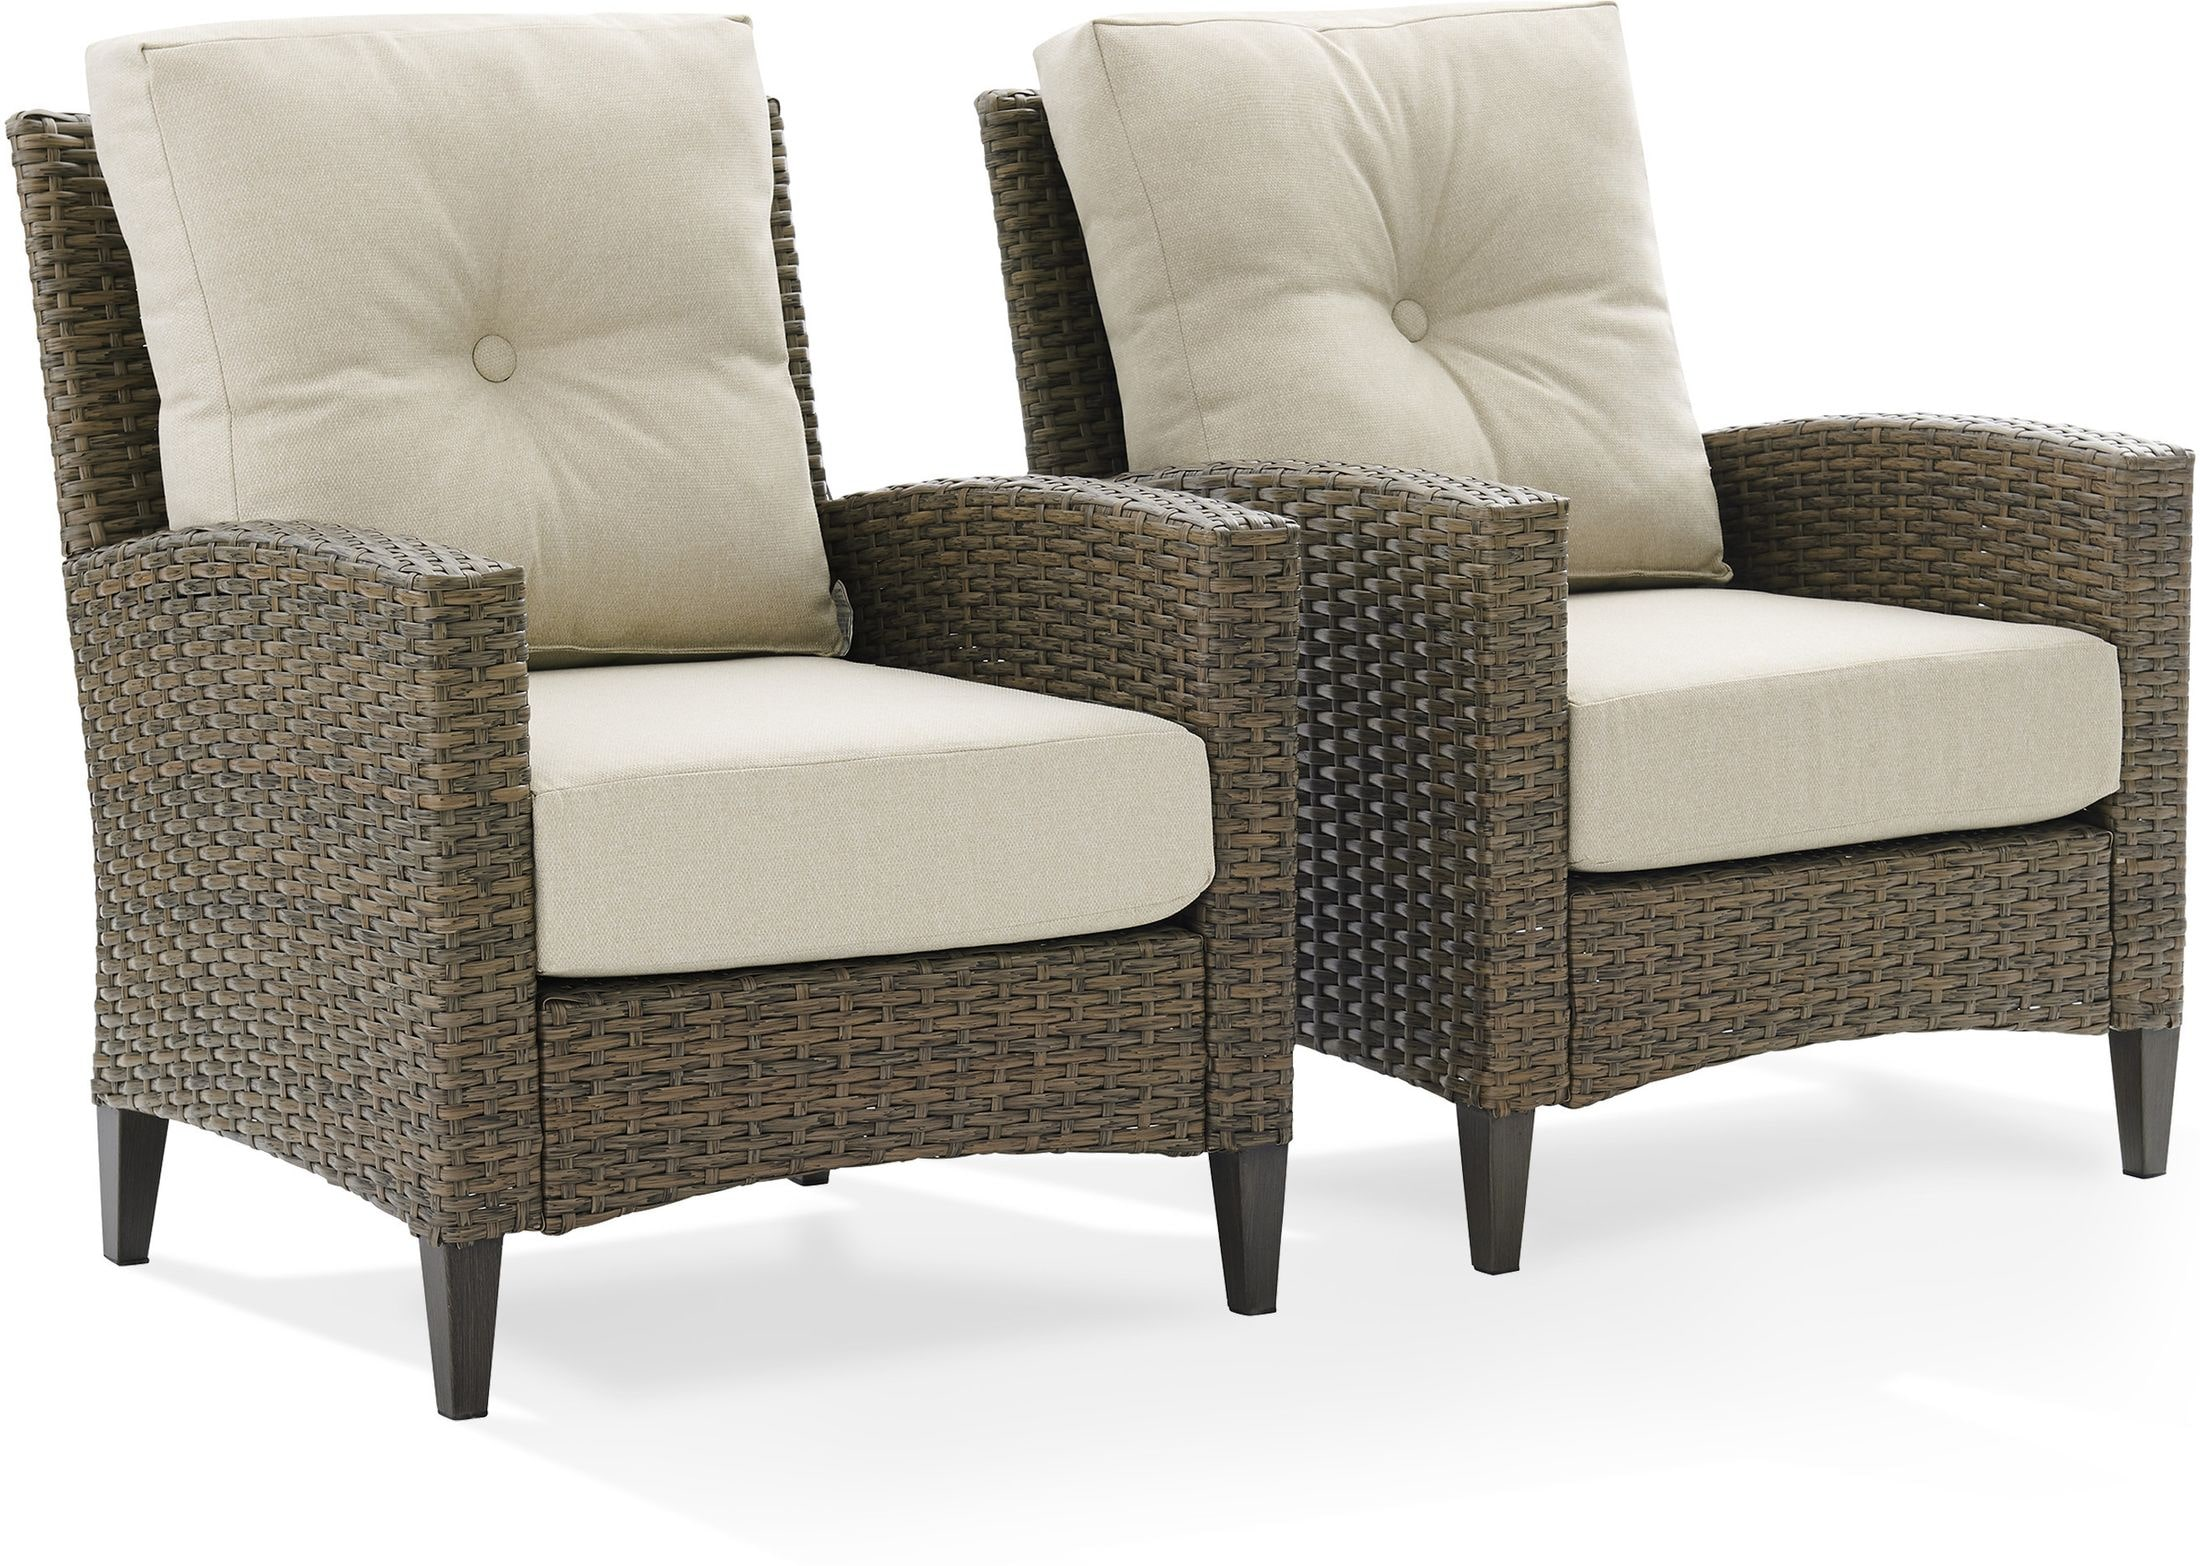 Outdoor Furniture - Huron Set of 2 Outdoor Chairs